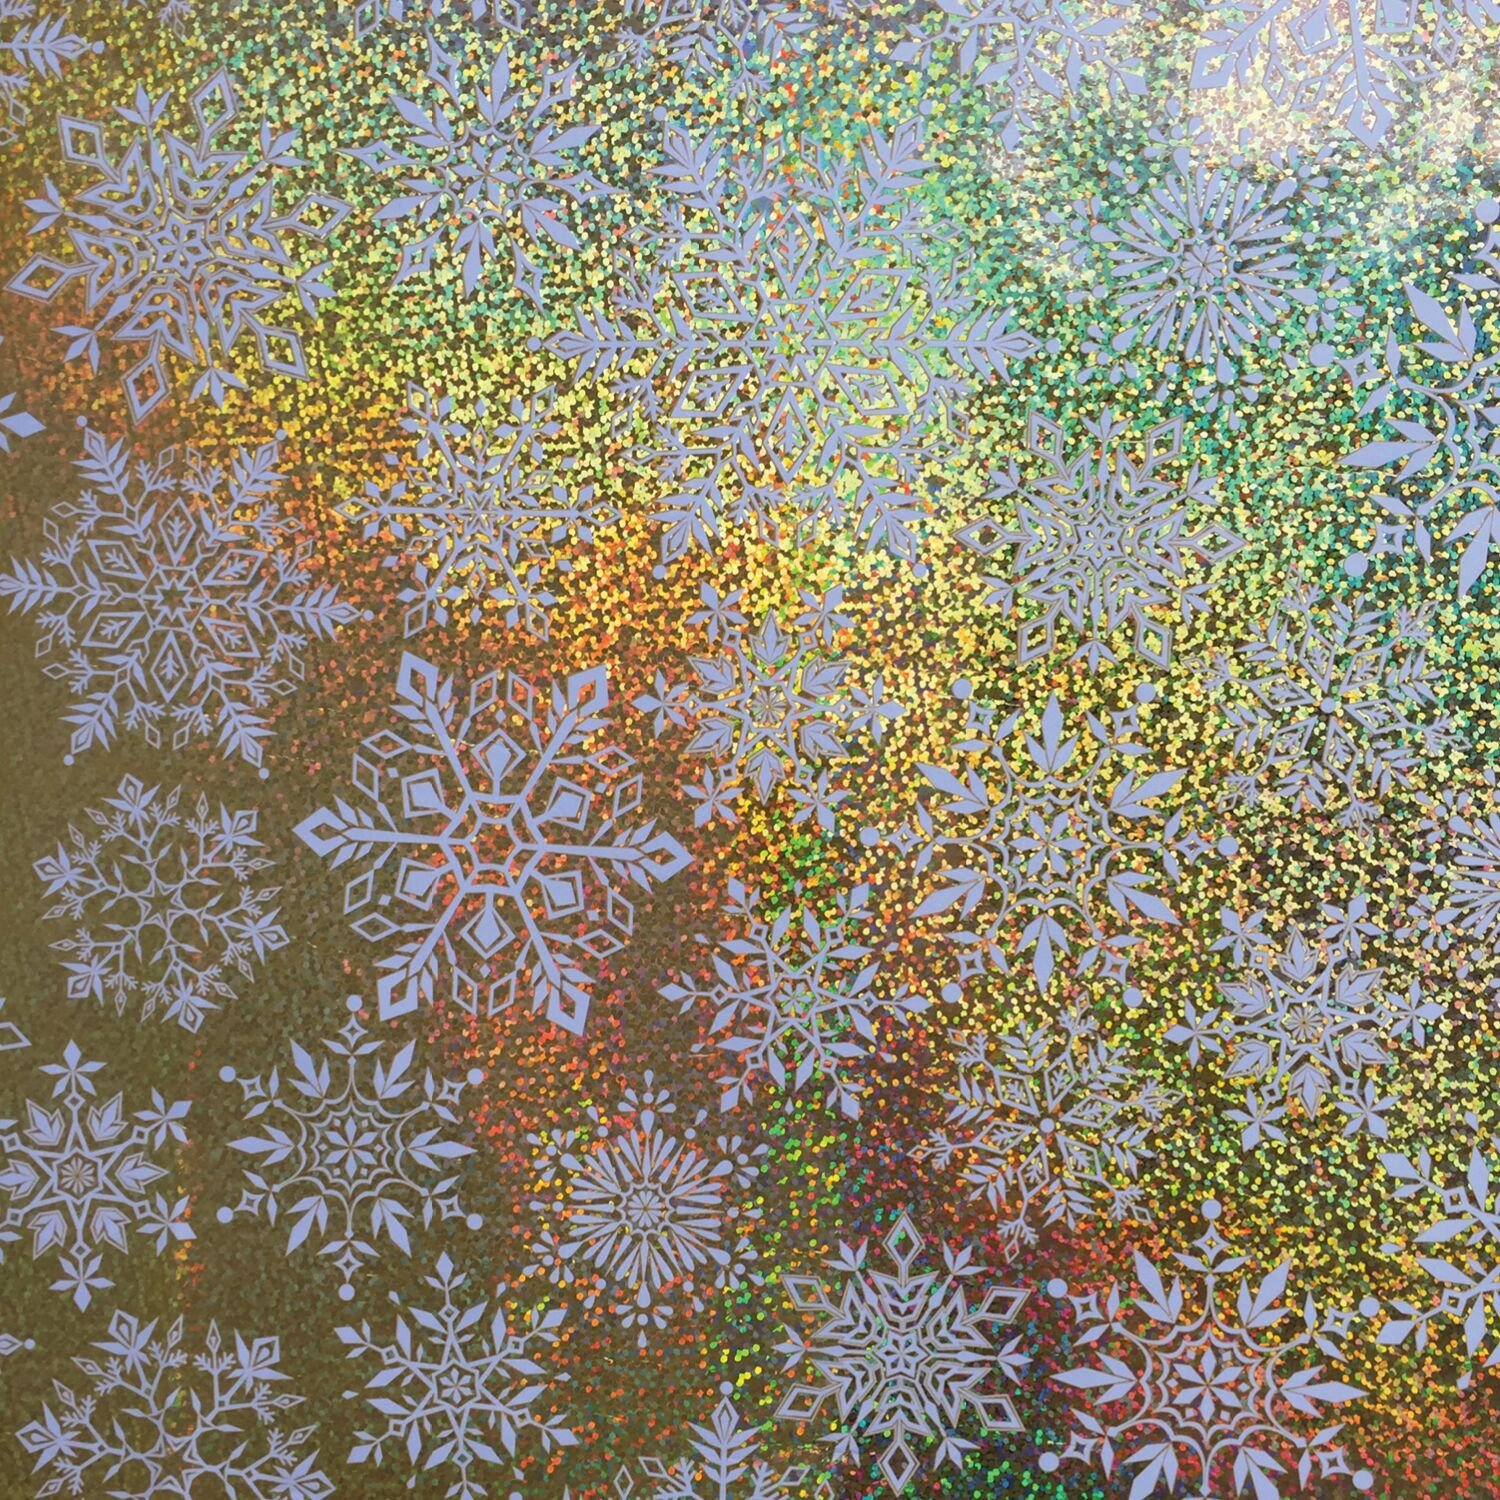 XB619C Glittering Snowflakes, 24 inch Wide X 208 feet 1/4 Ream